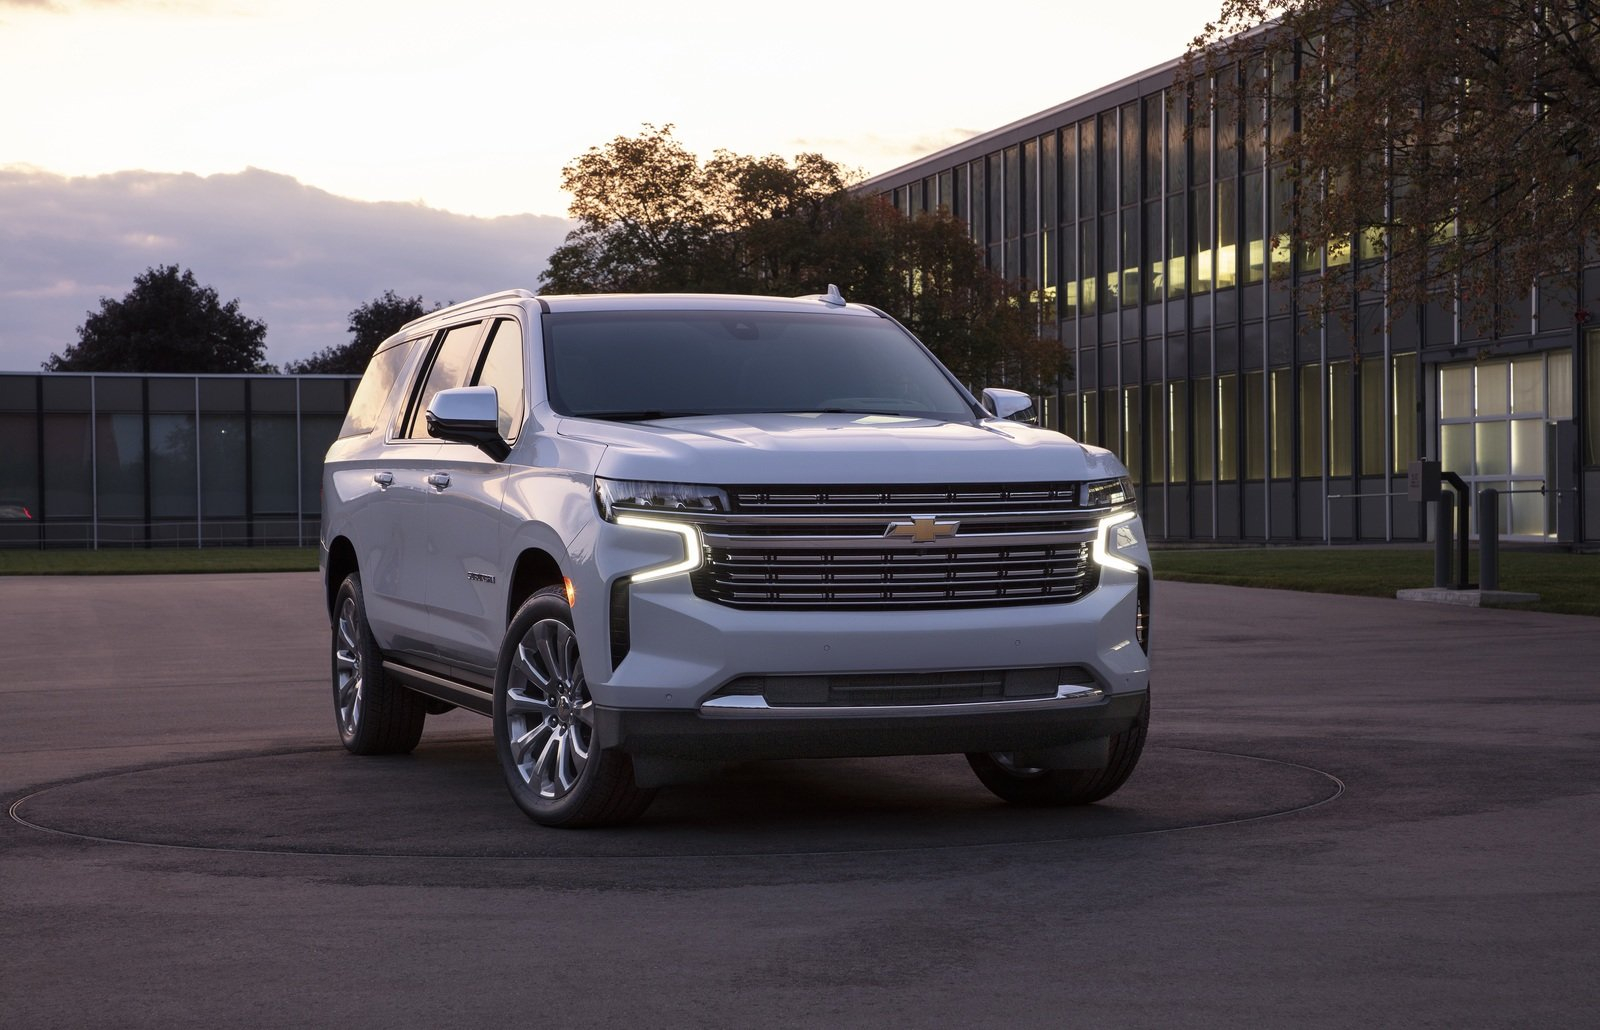 2021 Chevy Suburban 2021 Chevy Bolt Manual, Mileage, Msrp